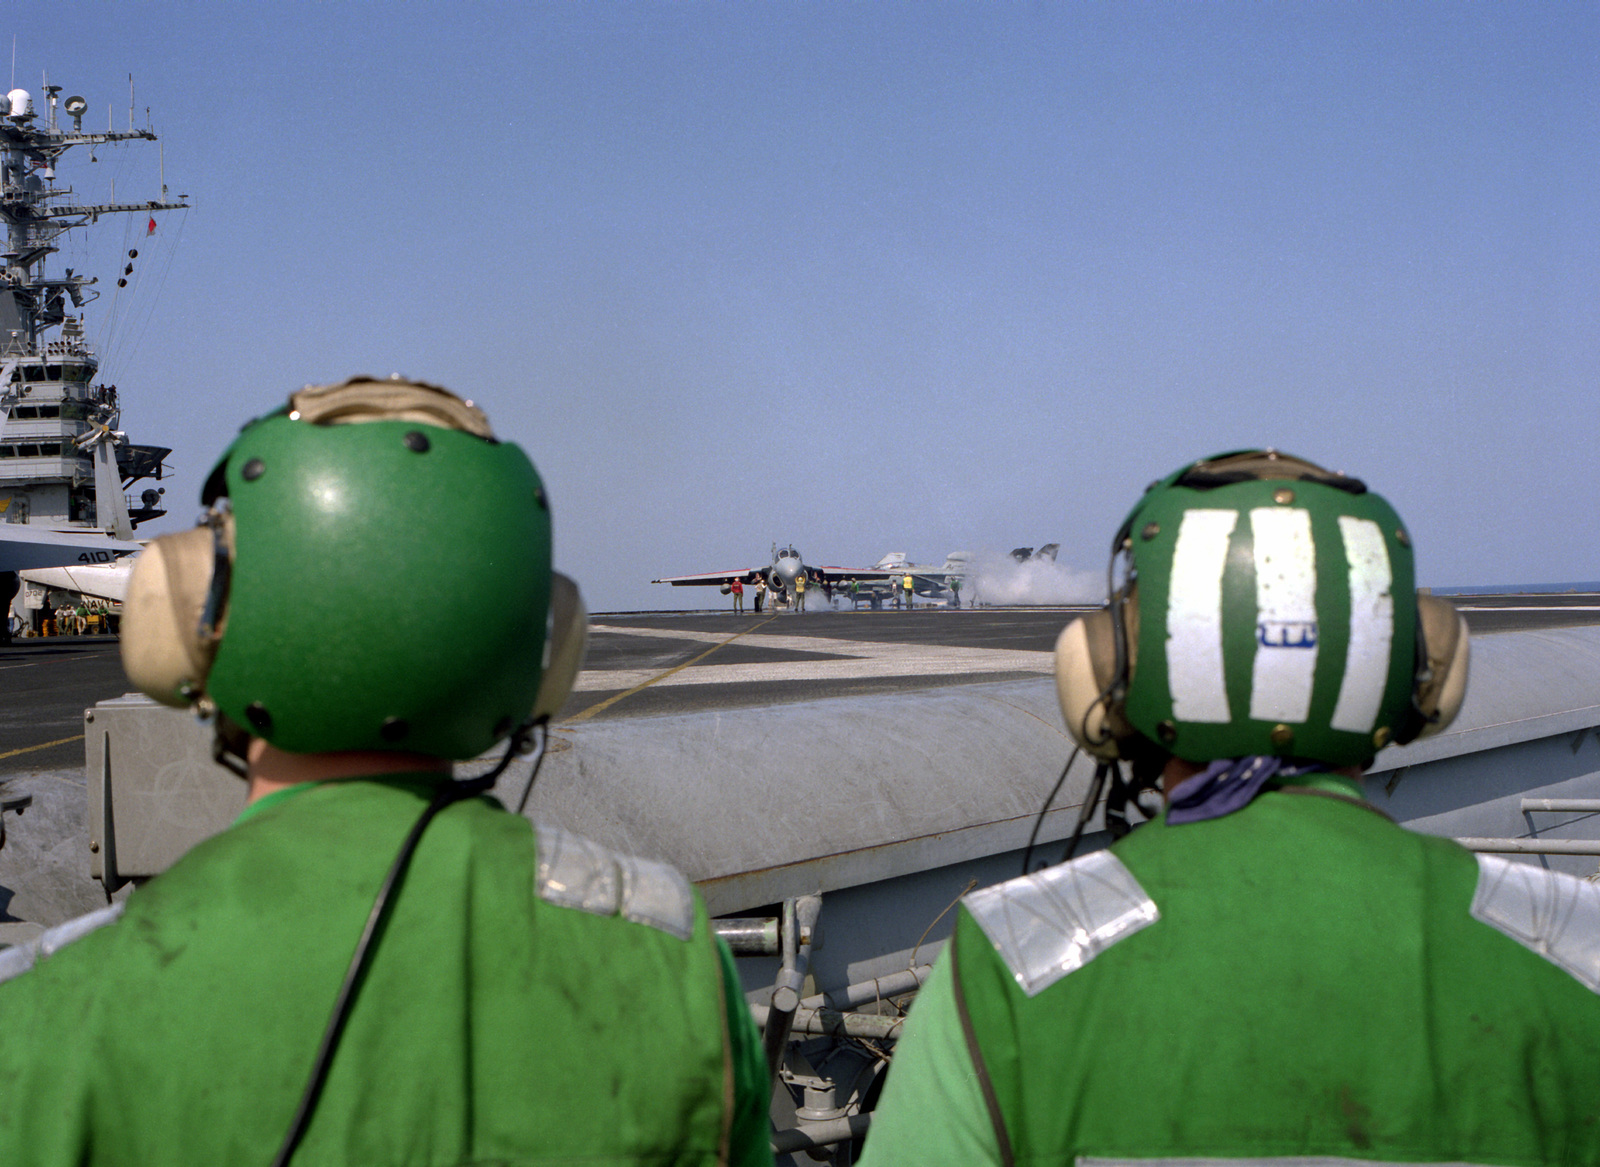 Flight deck crewmen watch from the deck edge as an A-6E Intruder aircraft is prepared for launch from the nuclear-powered aircraft carrier USS THEODORE ROOSEVELT (CVN-71) during Operation Deny Flight